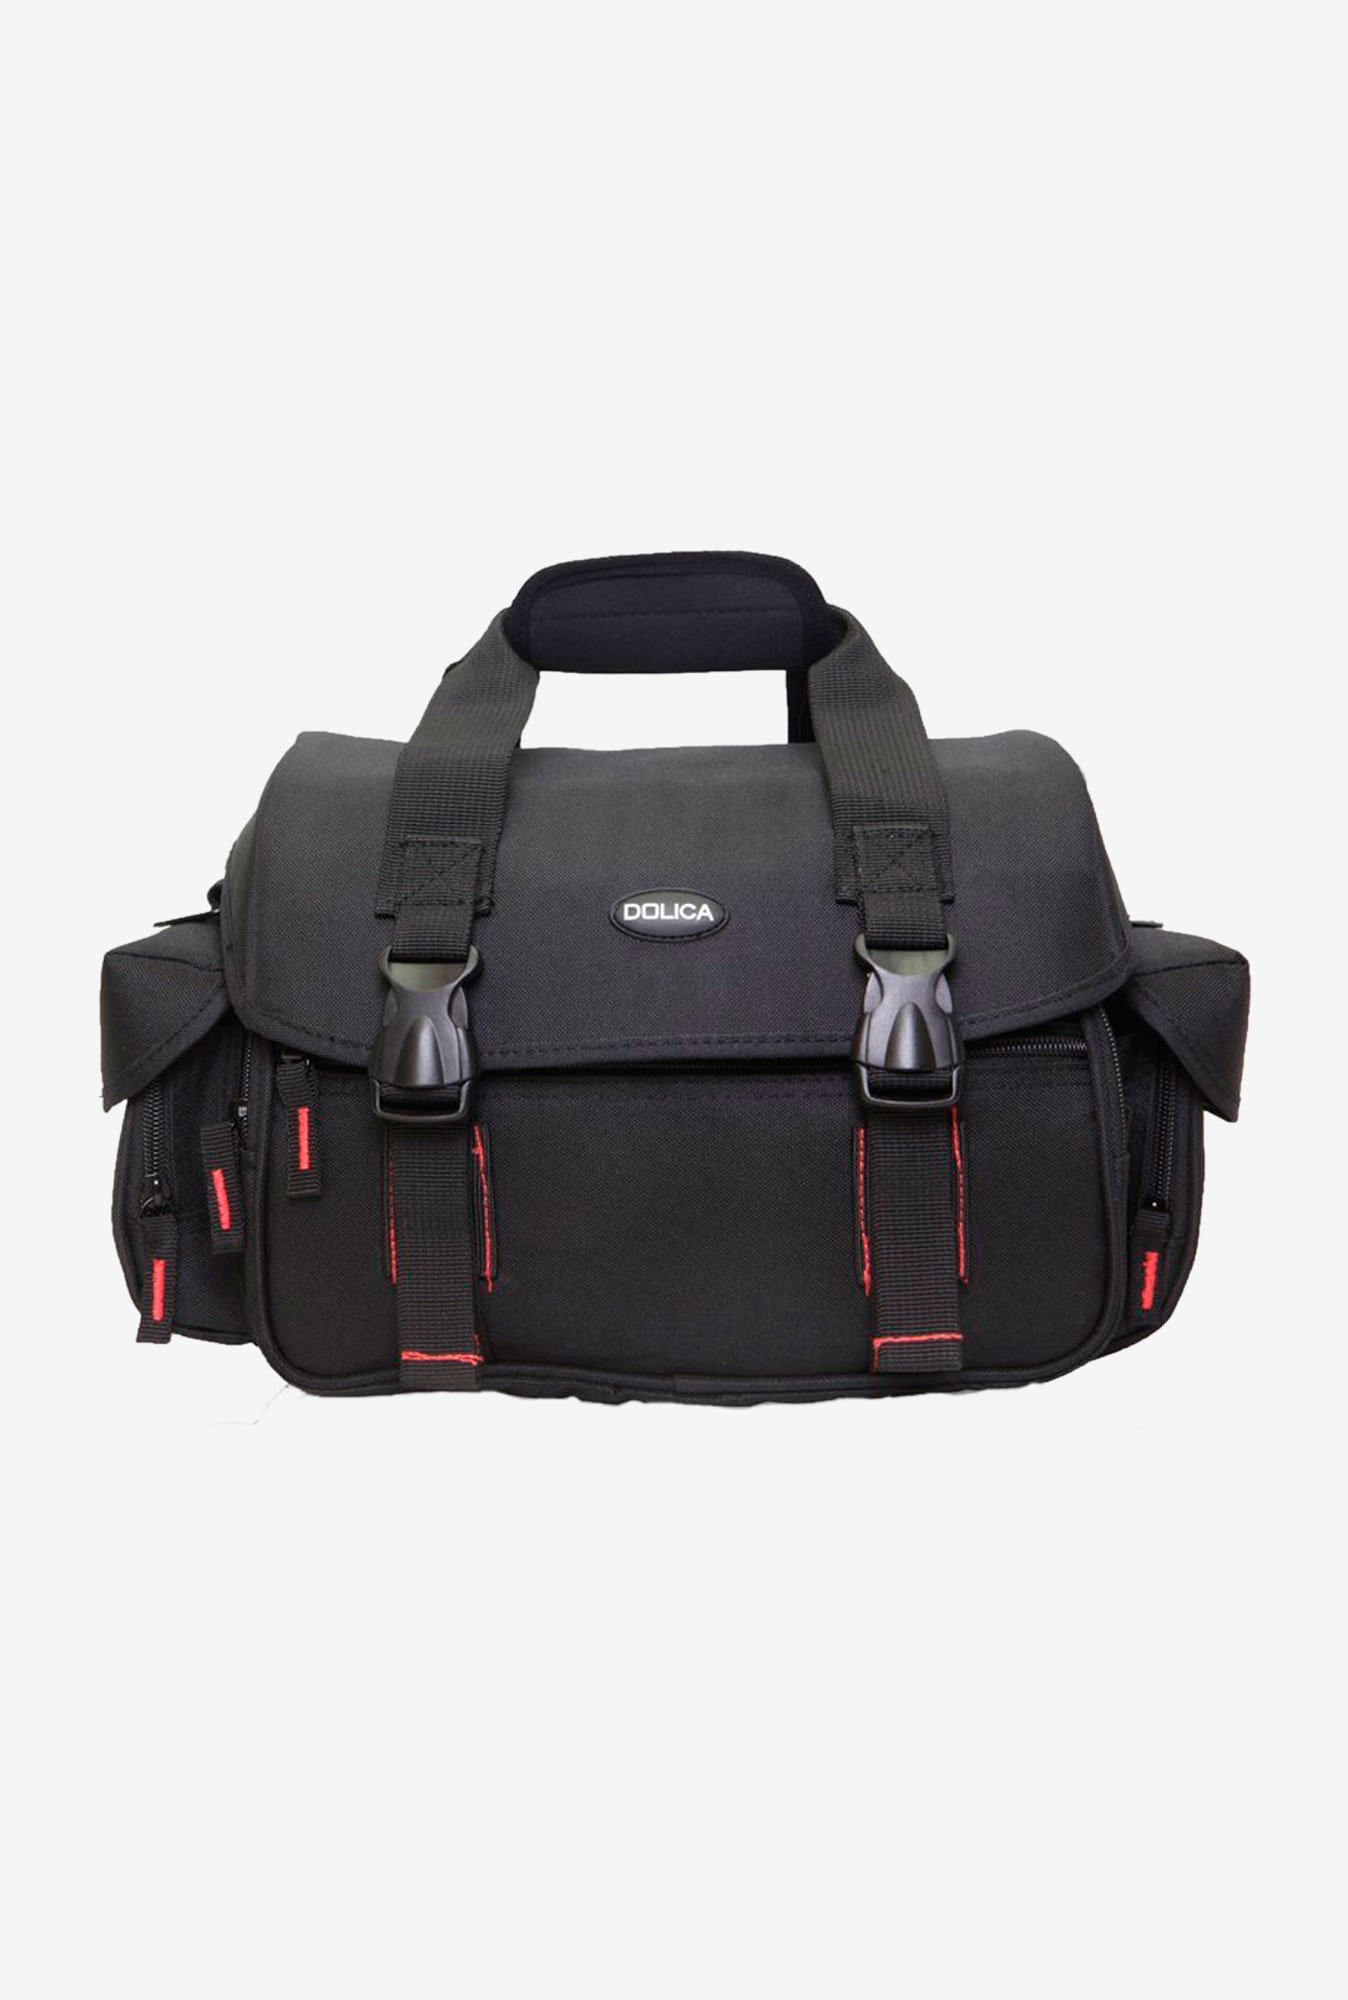 Dolica GS-300 Shoulder Case Black